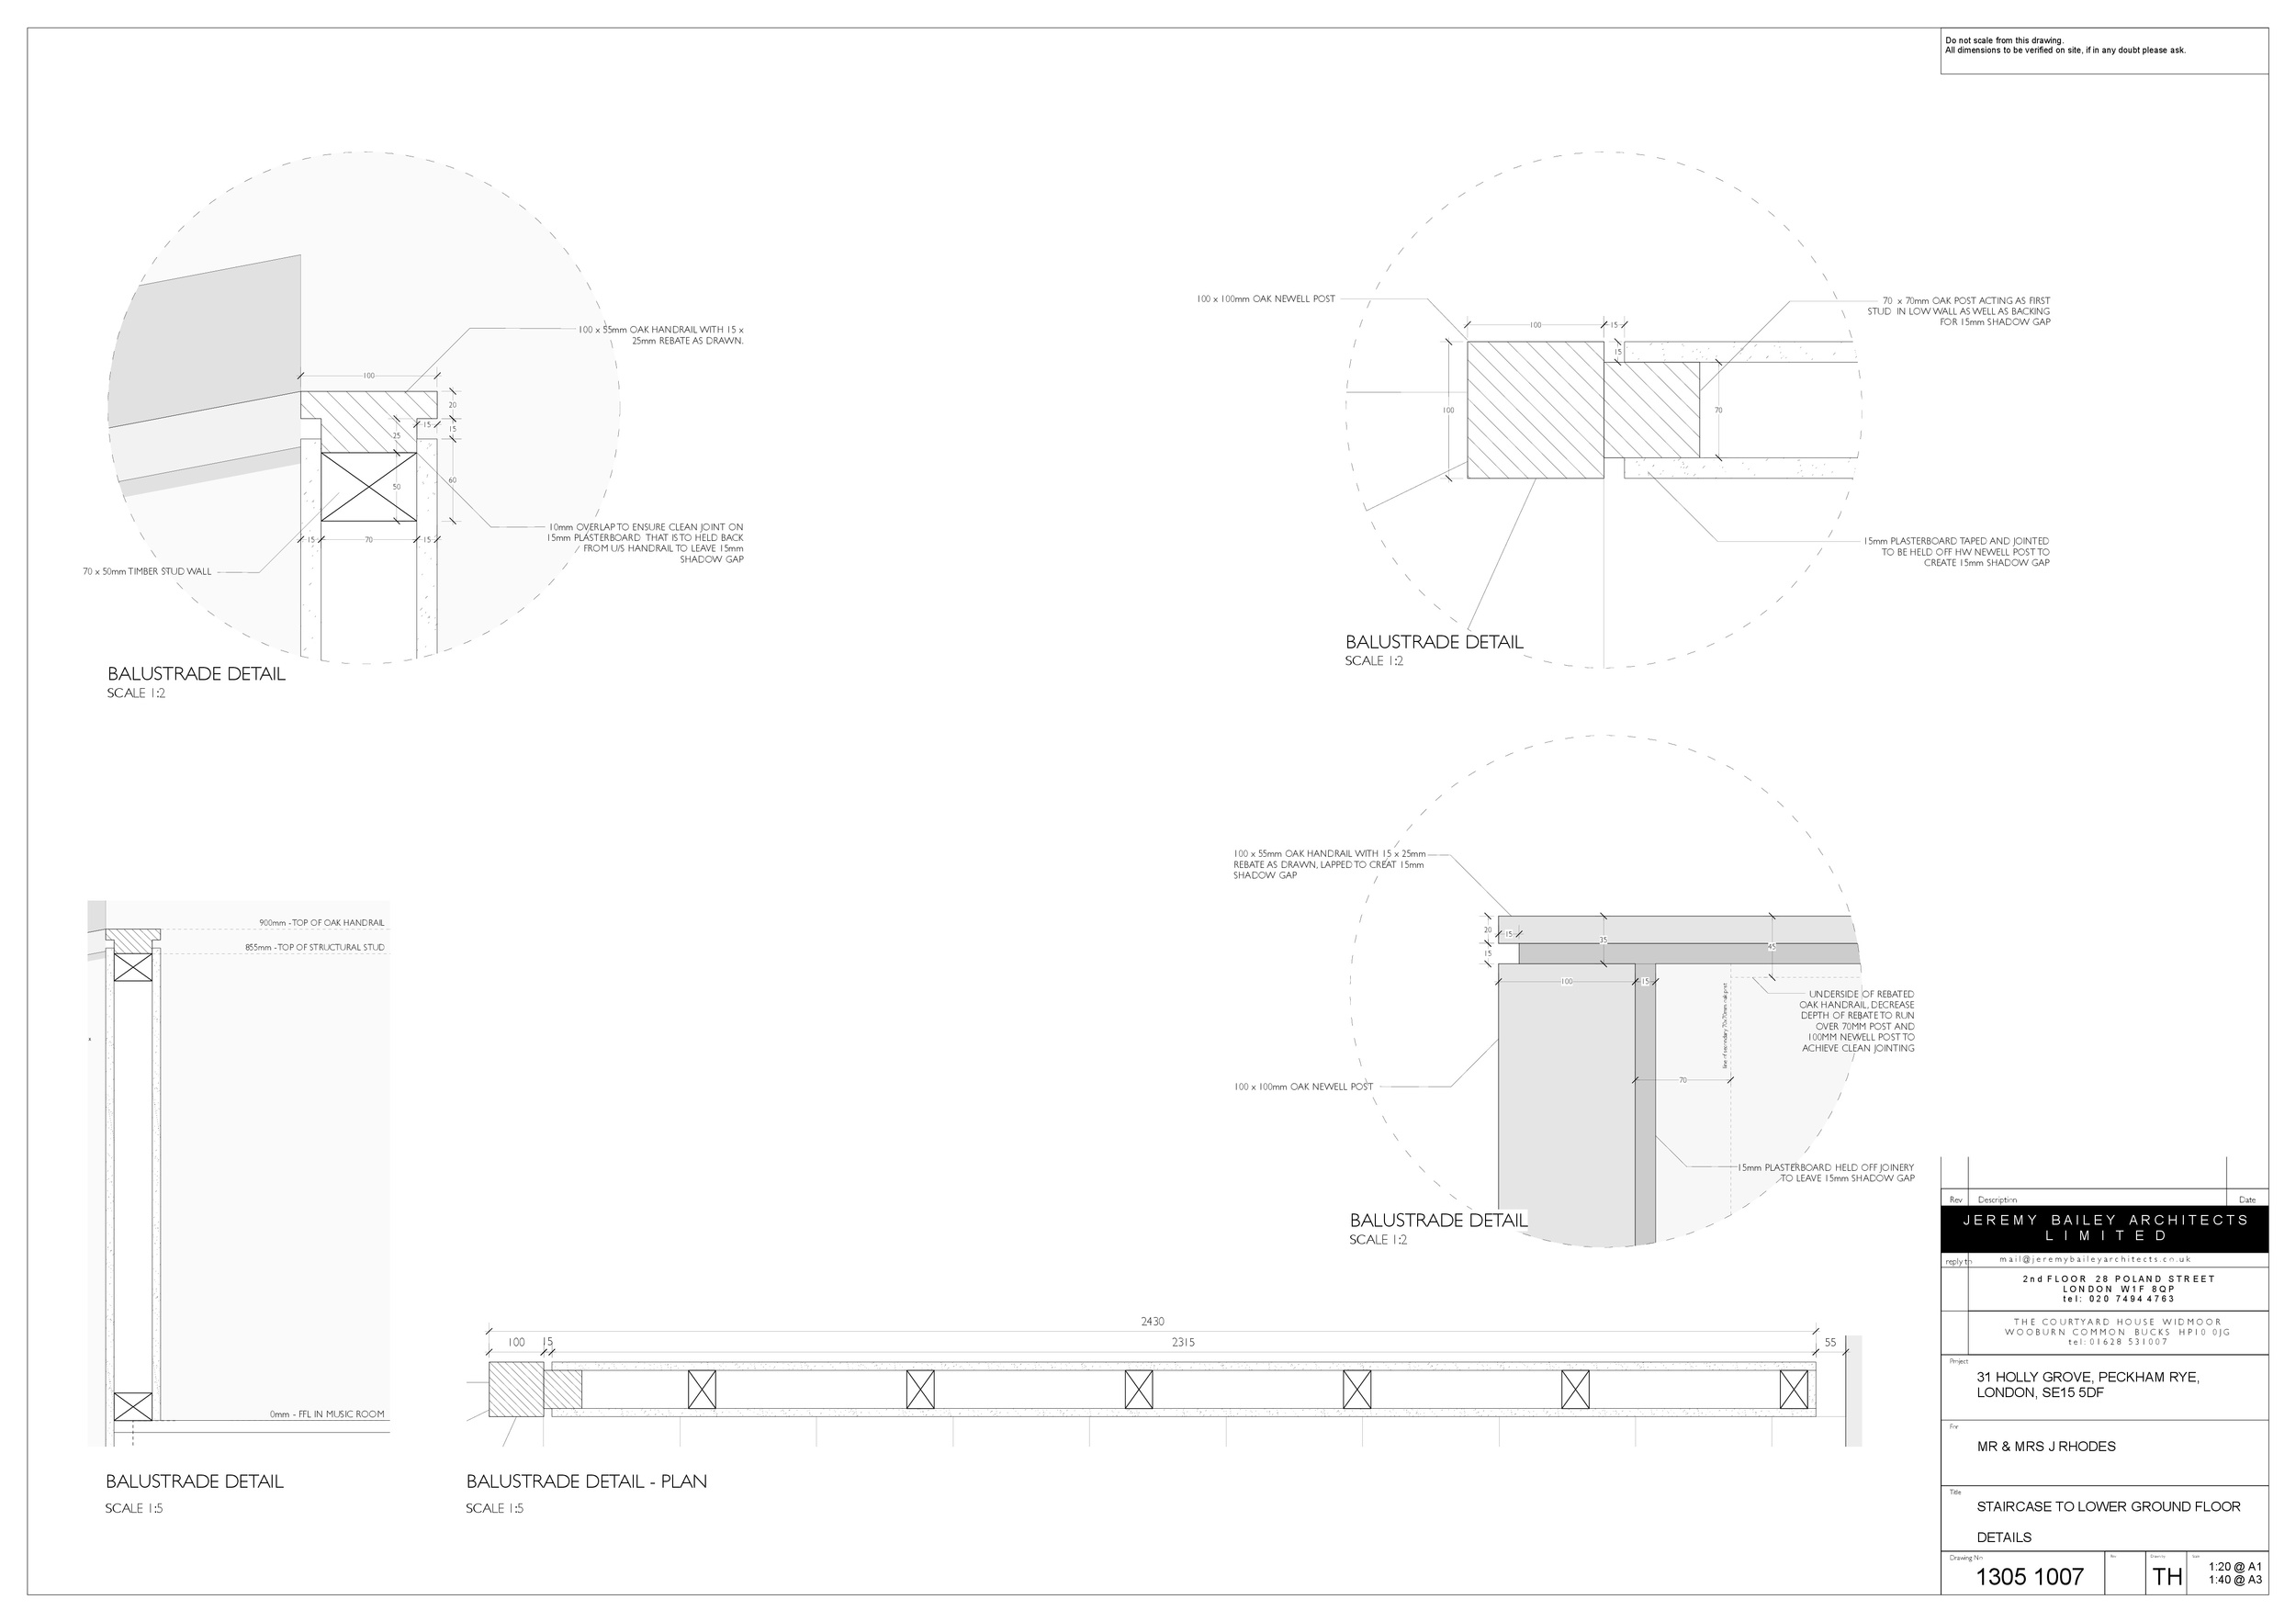 1305 1007 Proposed LGF Staircase-001.jpg